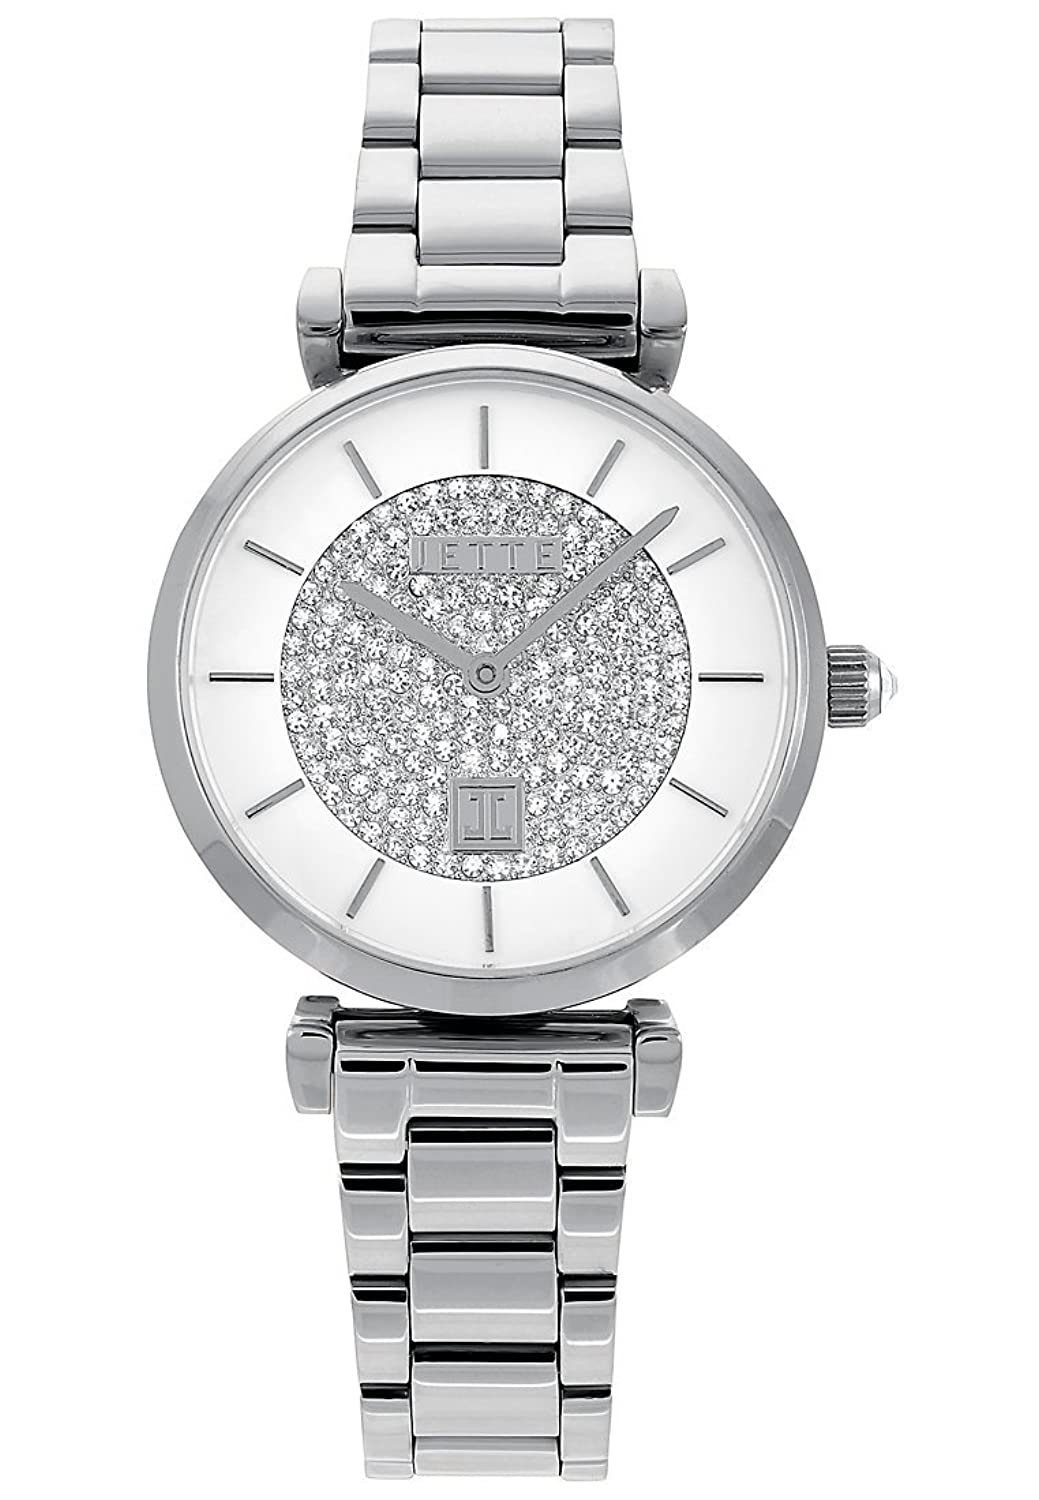 JETTE Time Damen-Armbanduhr Analog Quarz One Size - weiß - silber